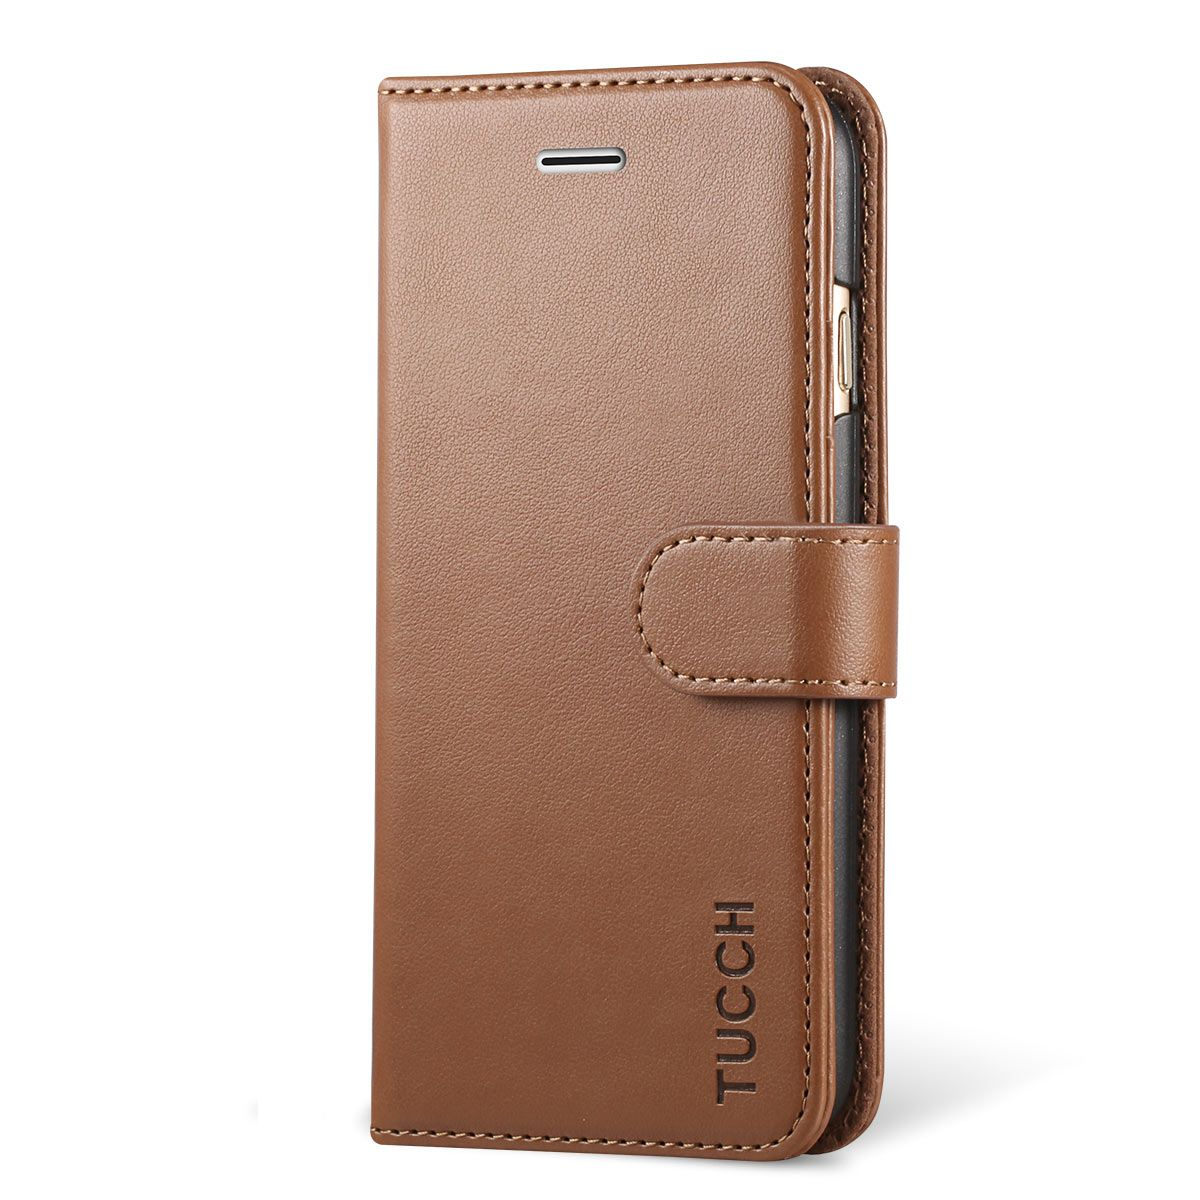 7 iphone wallet case